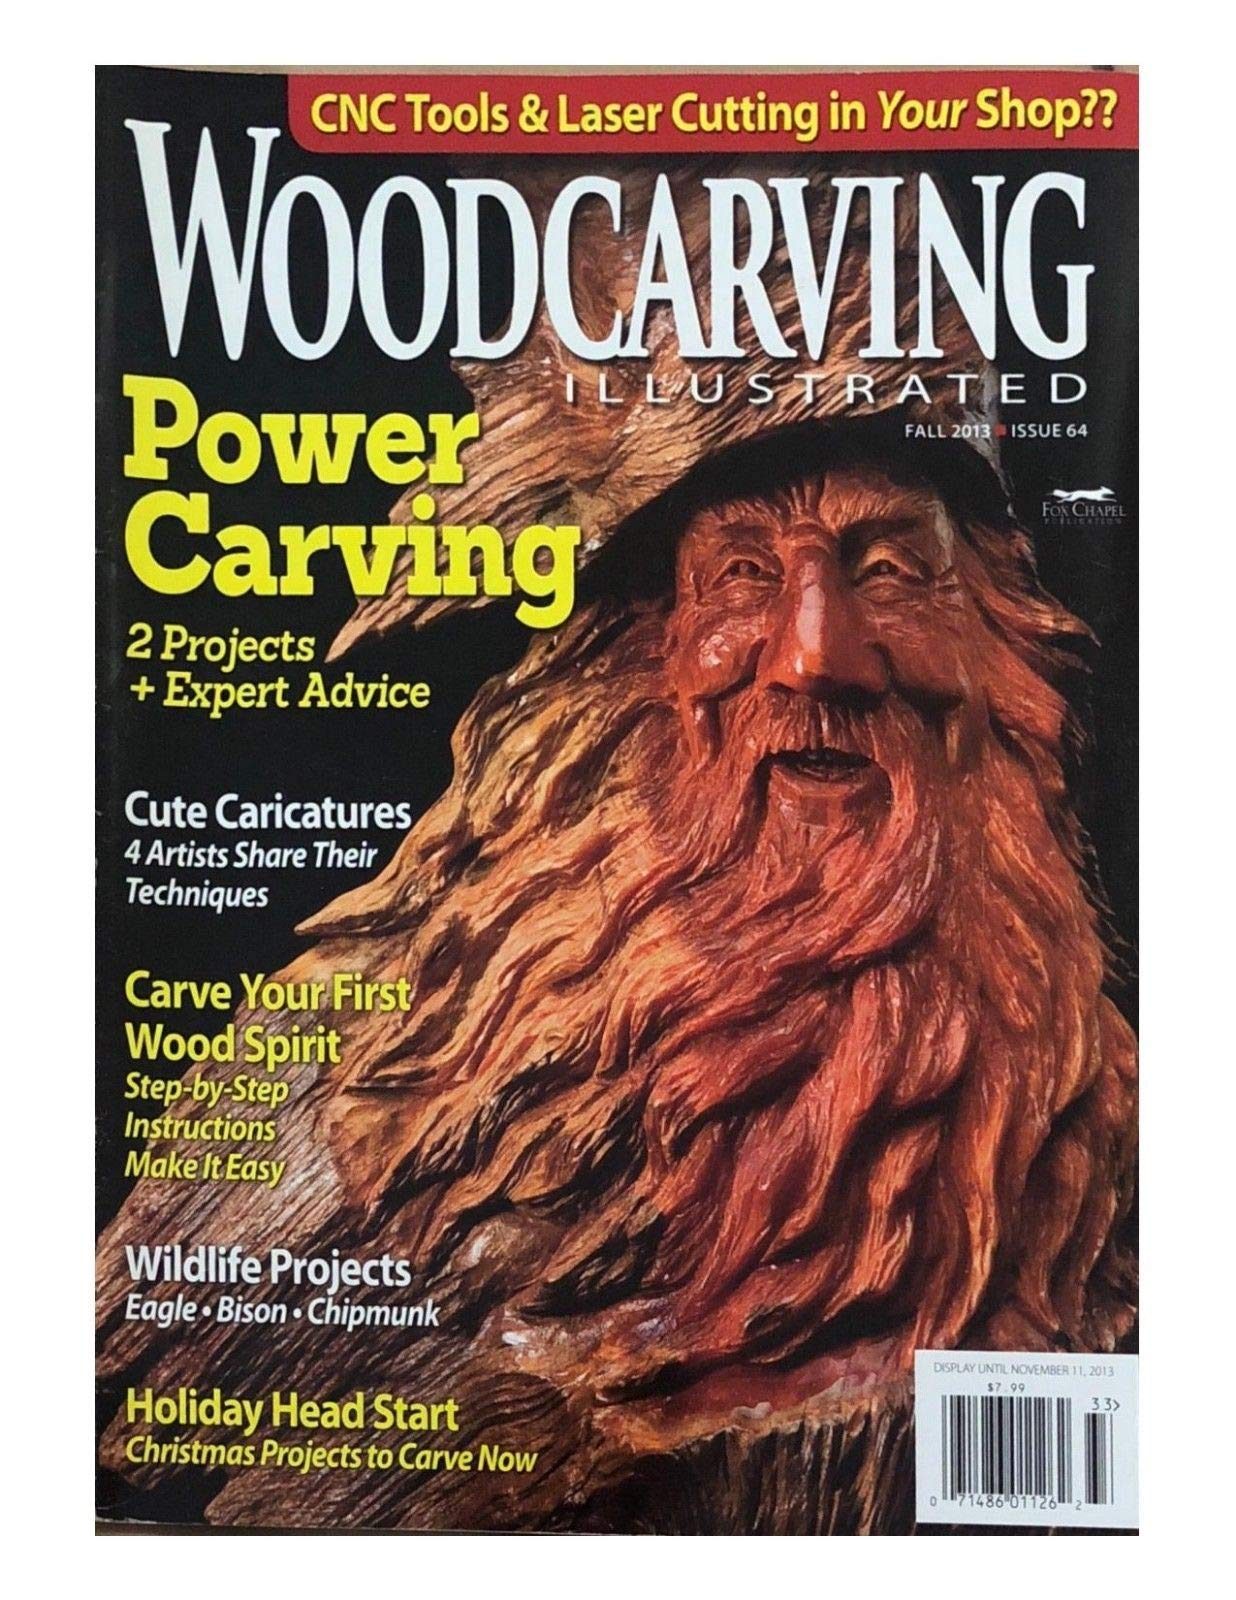 WOODCARVING ILLUSTRATED MAGAZINE, FALL 2013 ISSUE 64